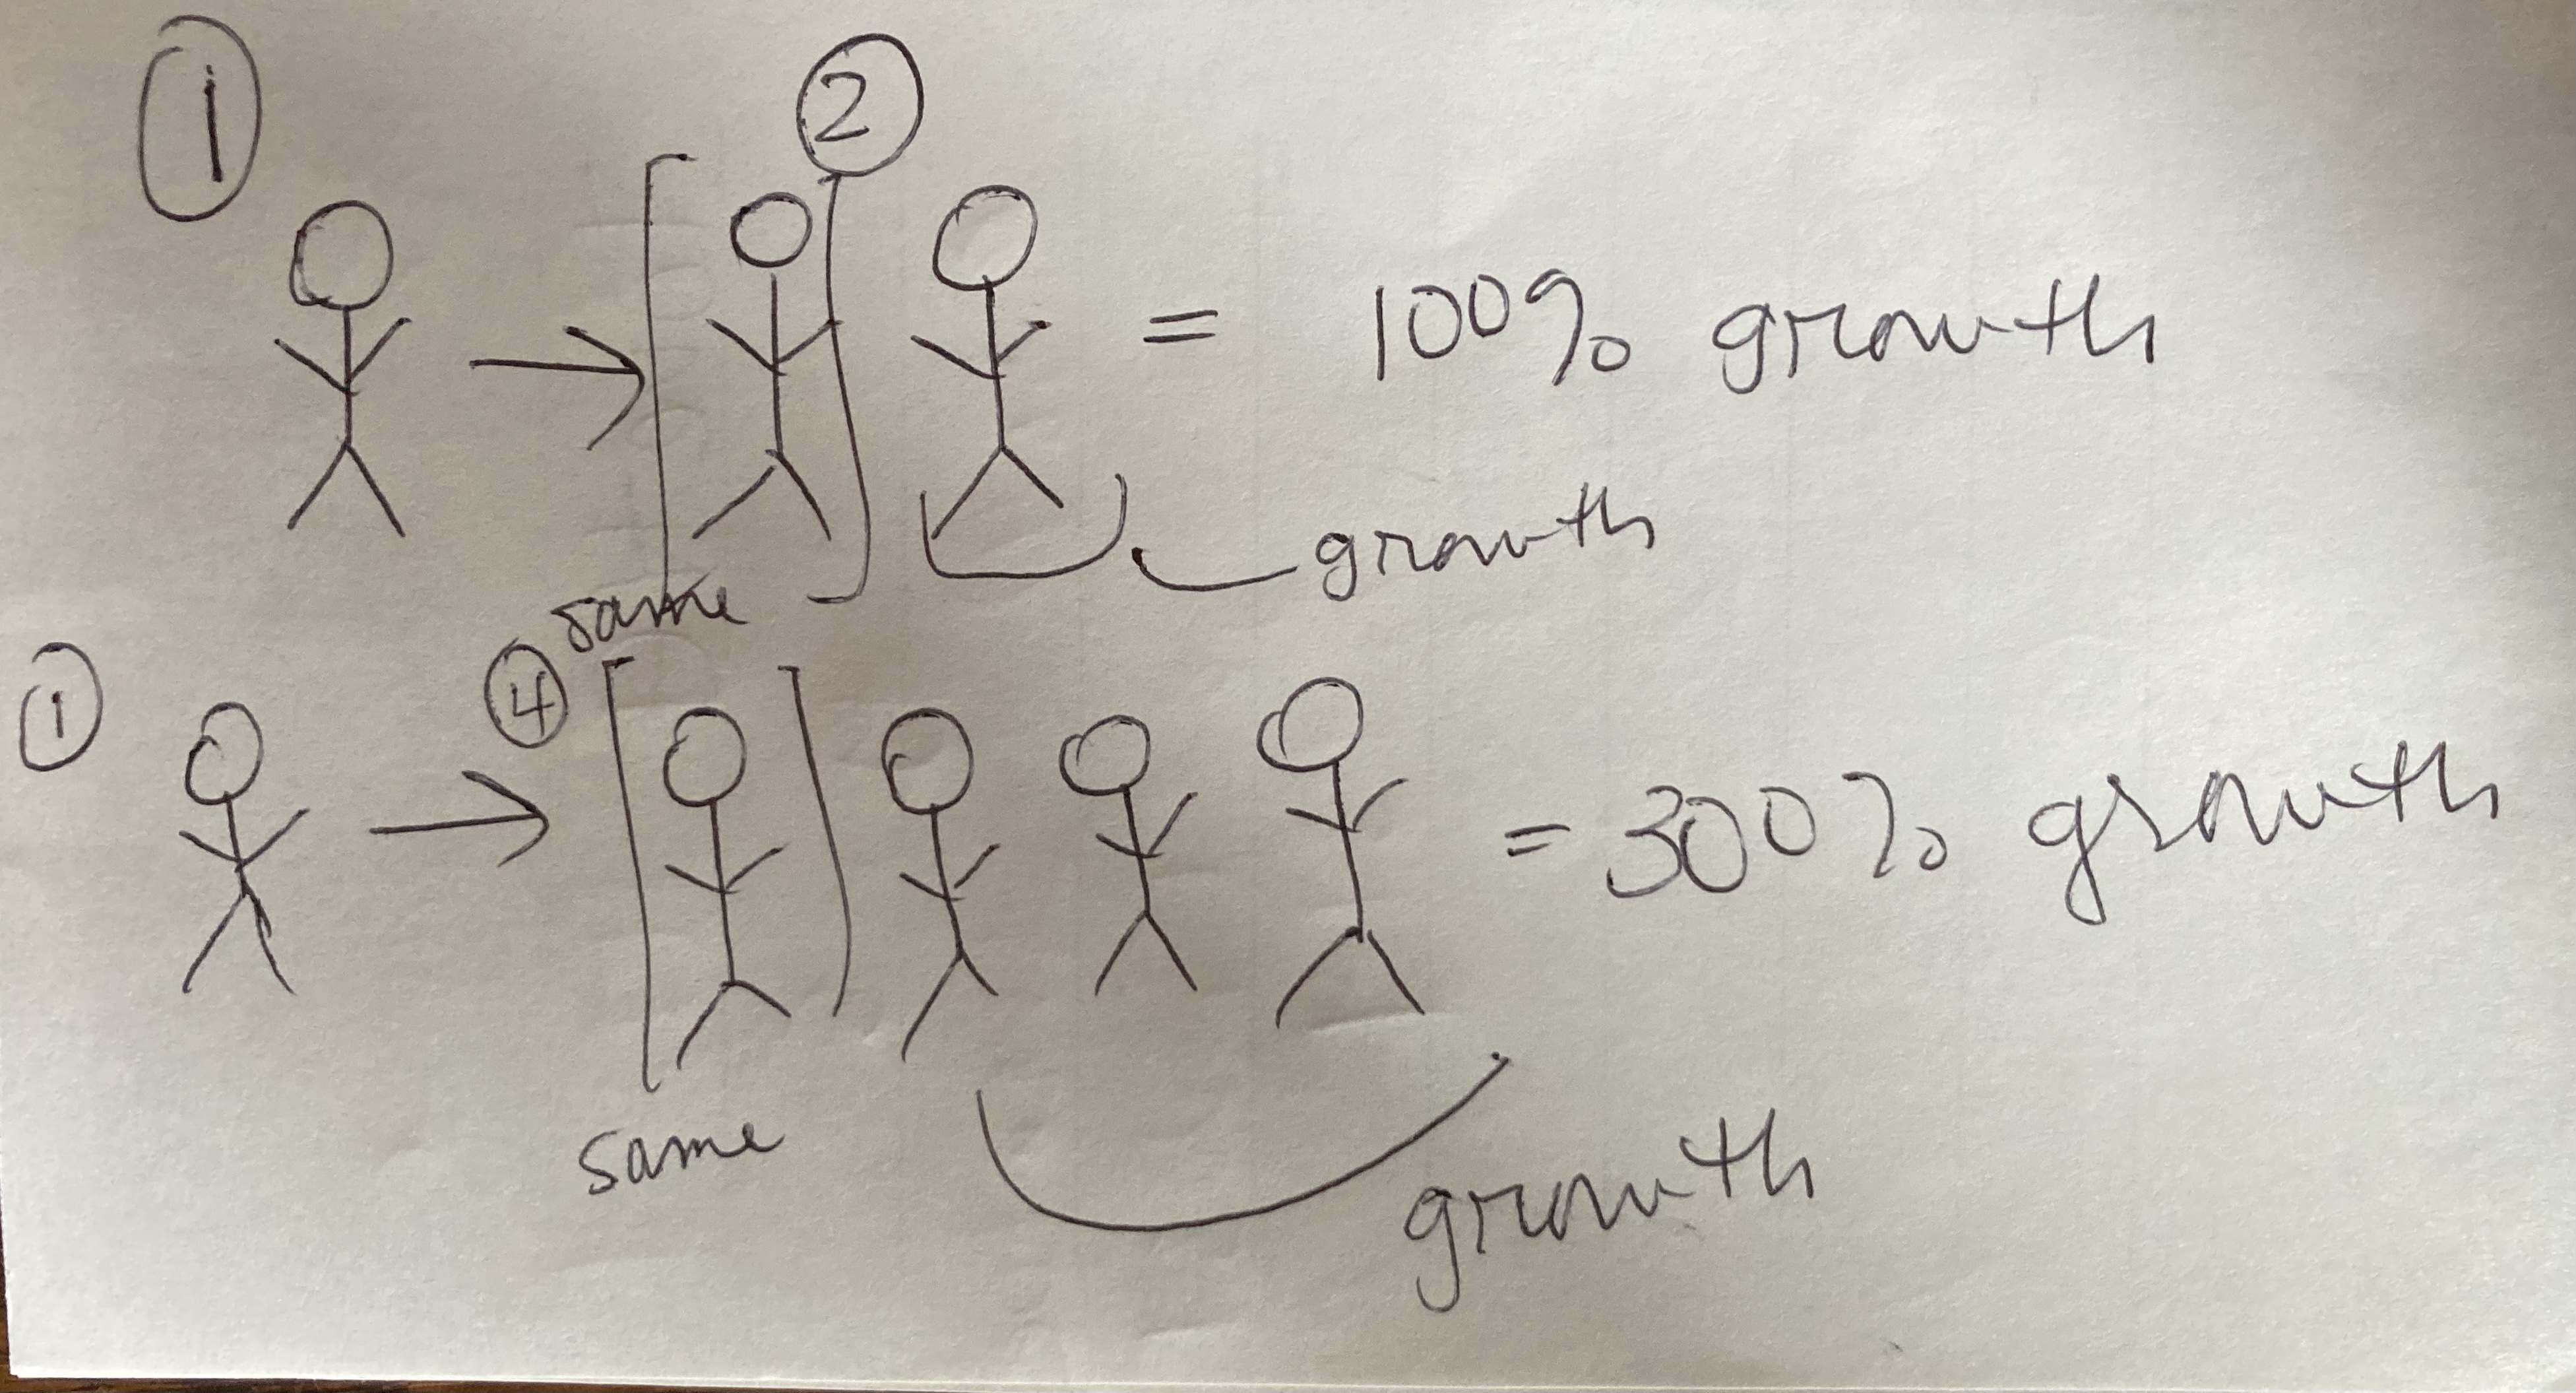 drawing-of-stick-figures-showing-300-percent-growth